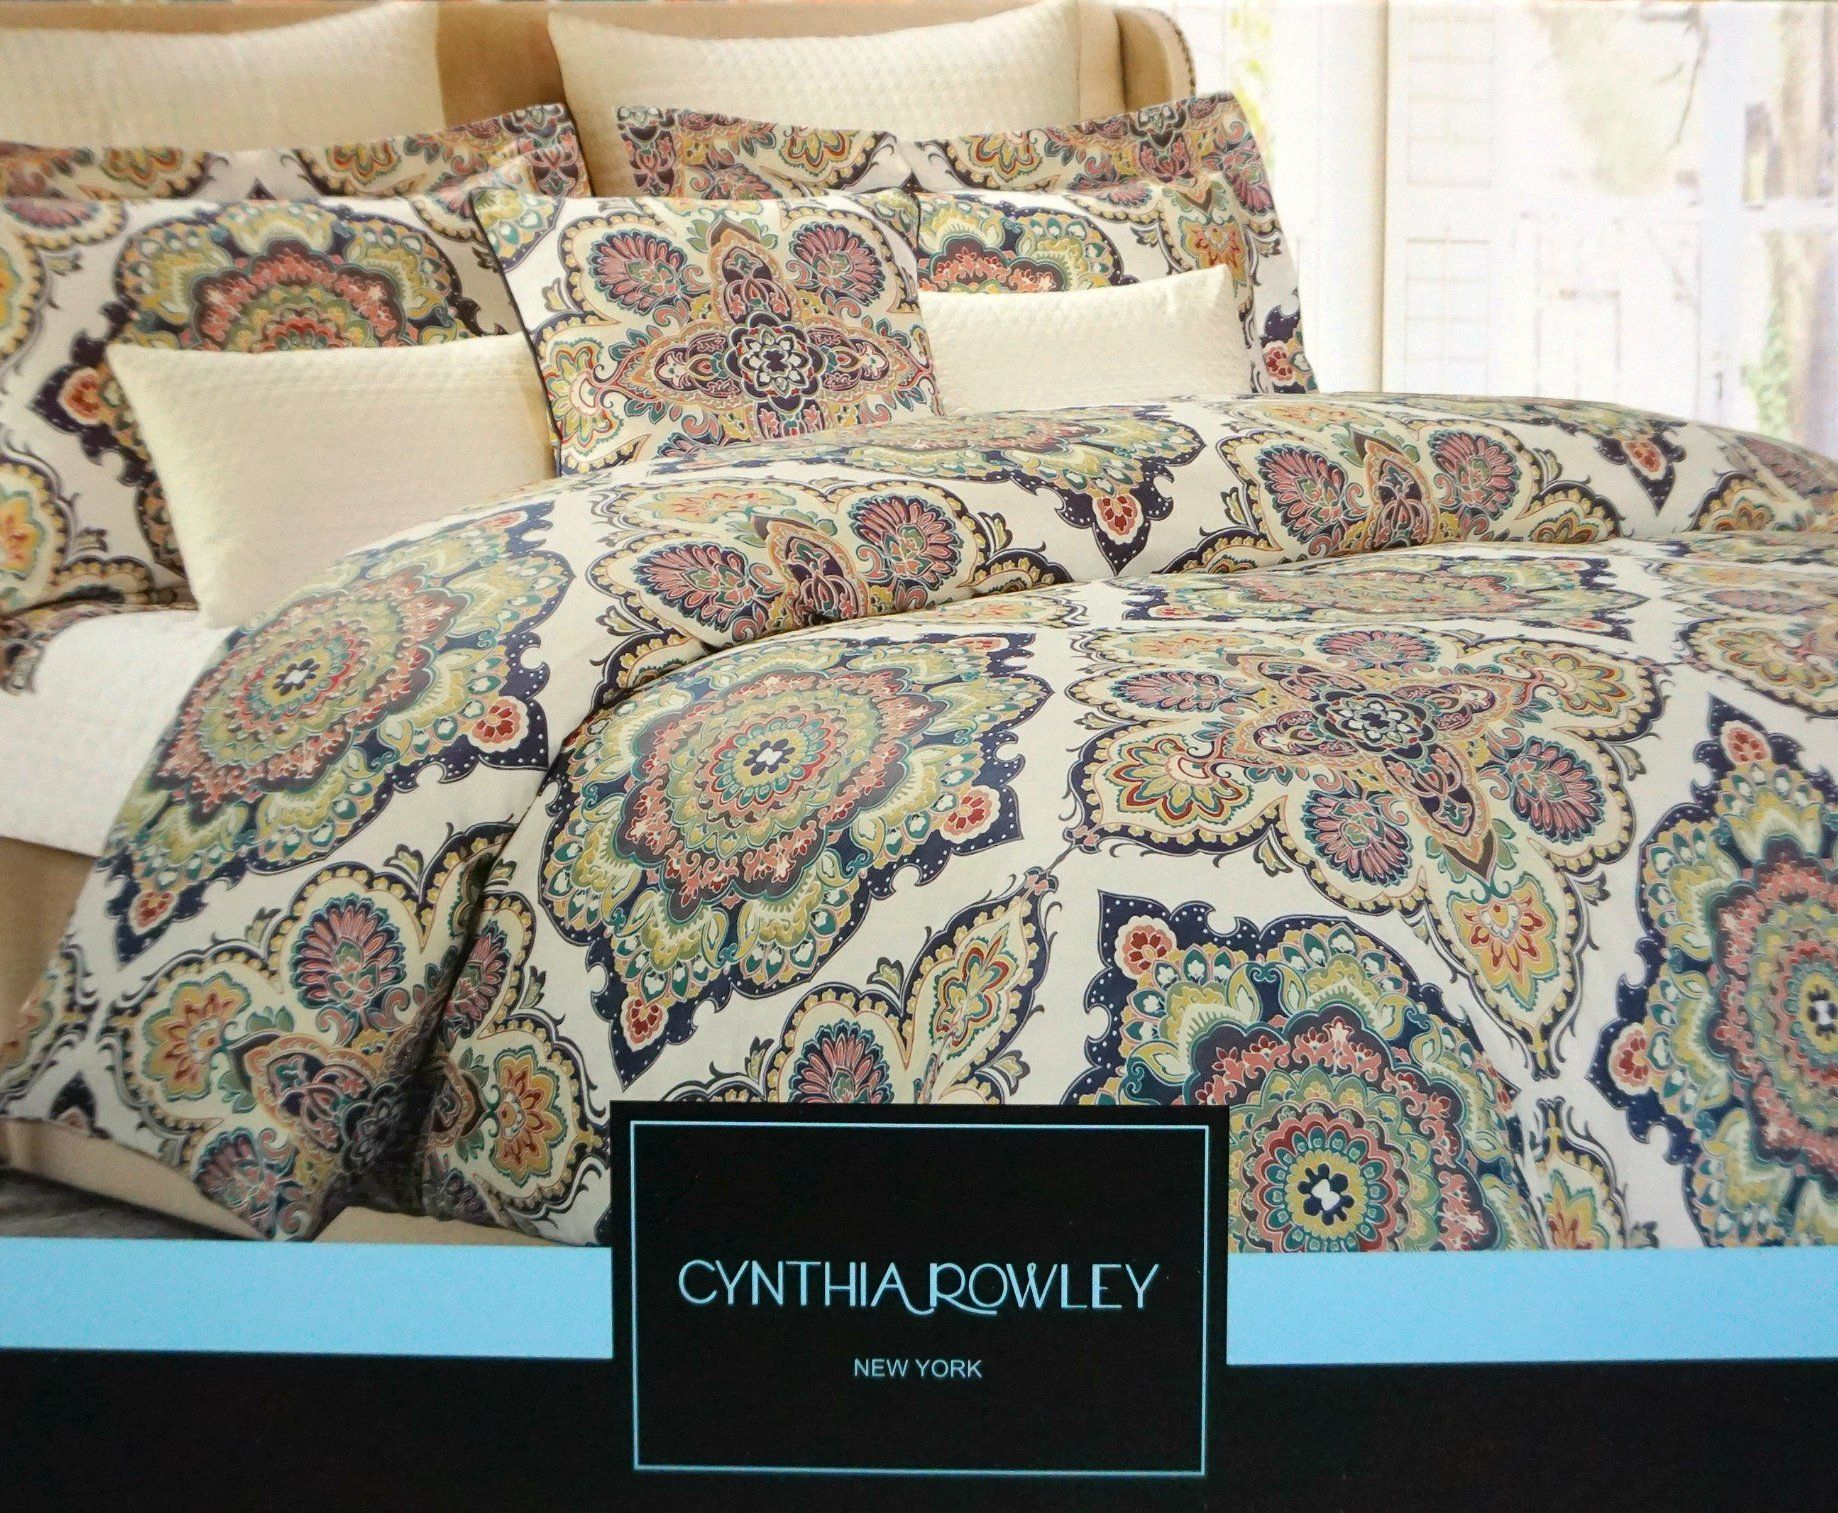 Cynthia Rowley 3pc KING Duvet Cover Set Blue Green Red Orange